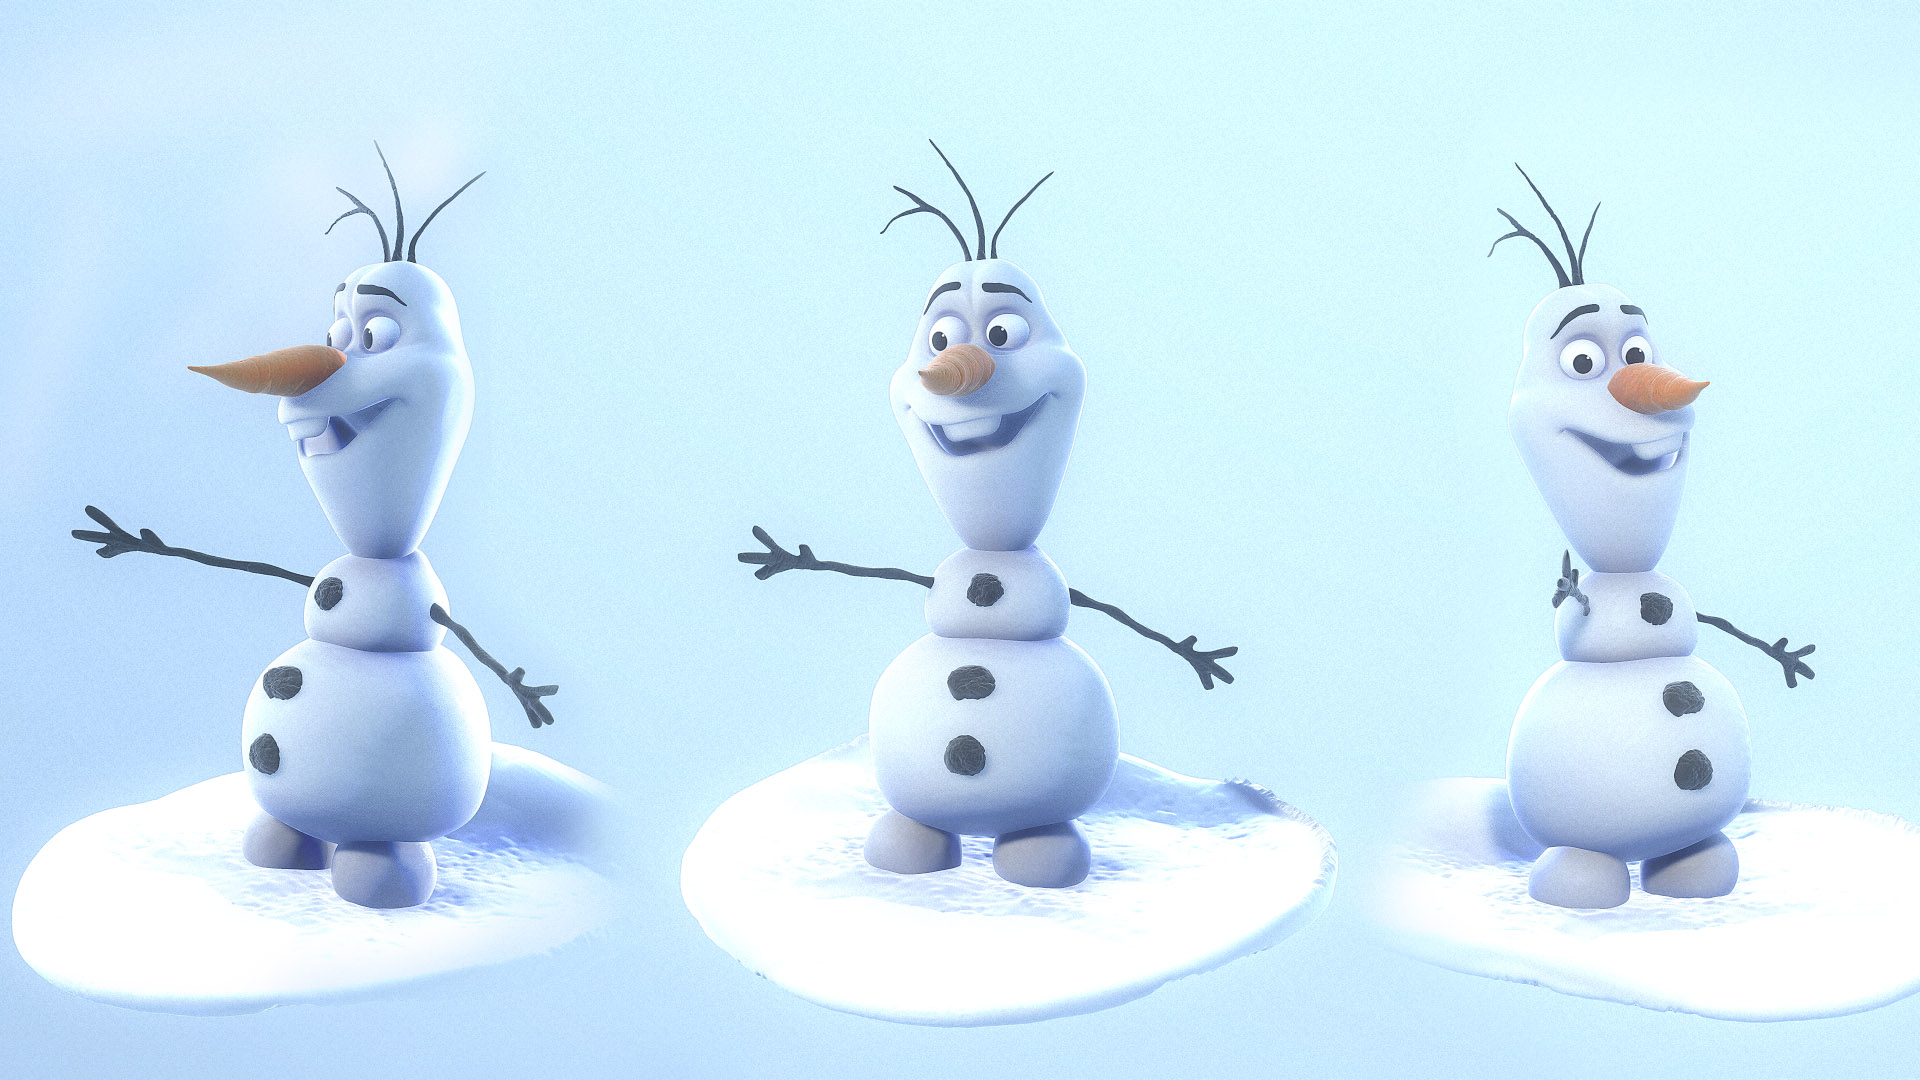 Olaf The Snowman Wallpapers Widescreen